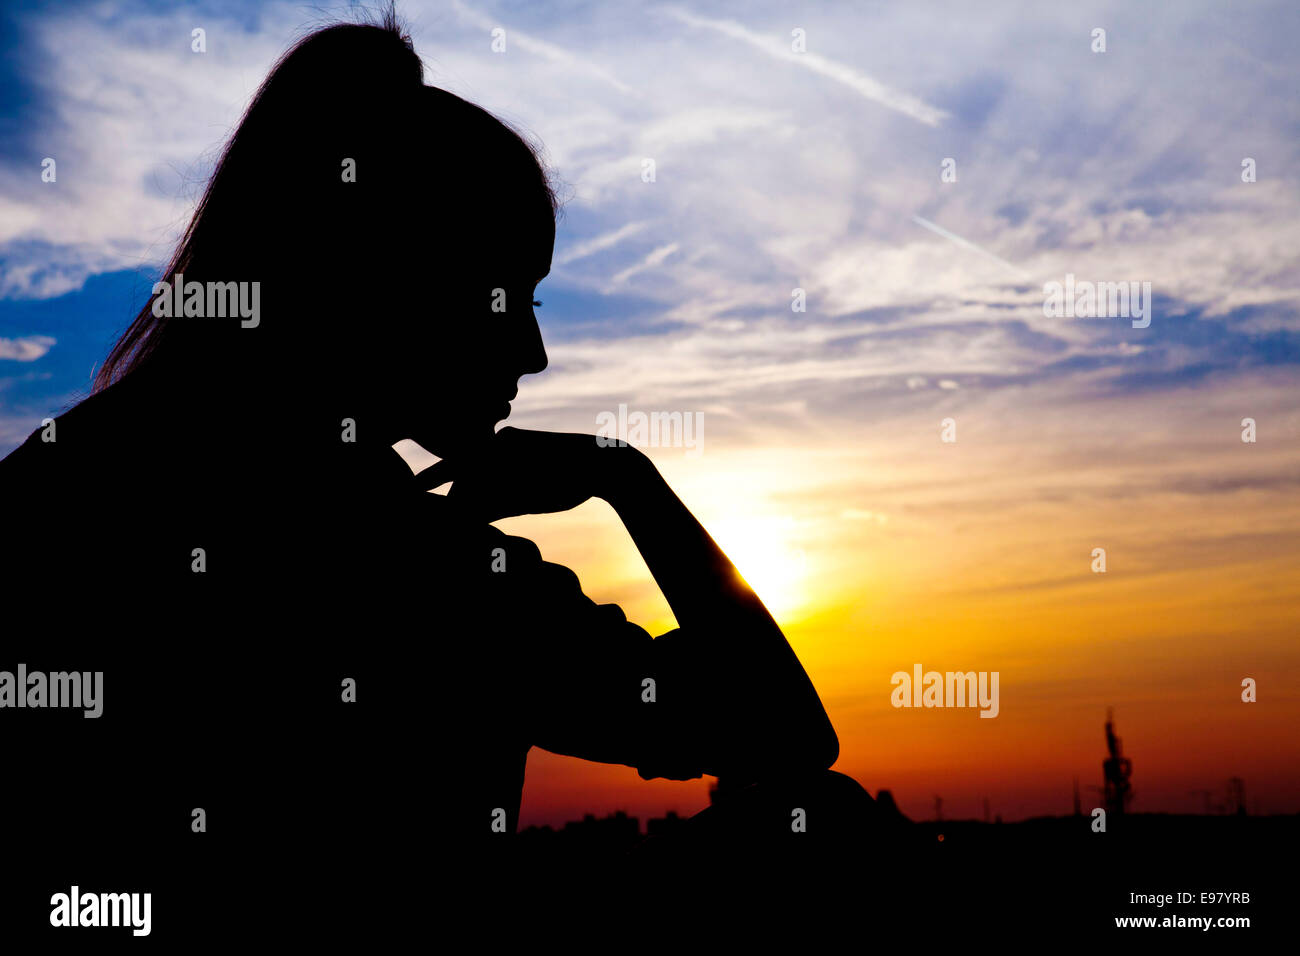 Silhouette of woman with hand on chin au coucher du soleil Photo Stock